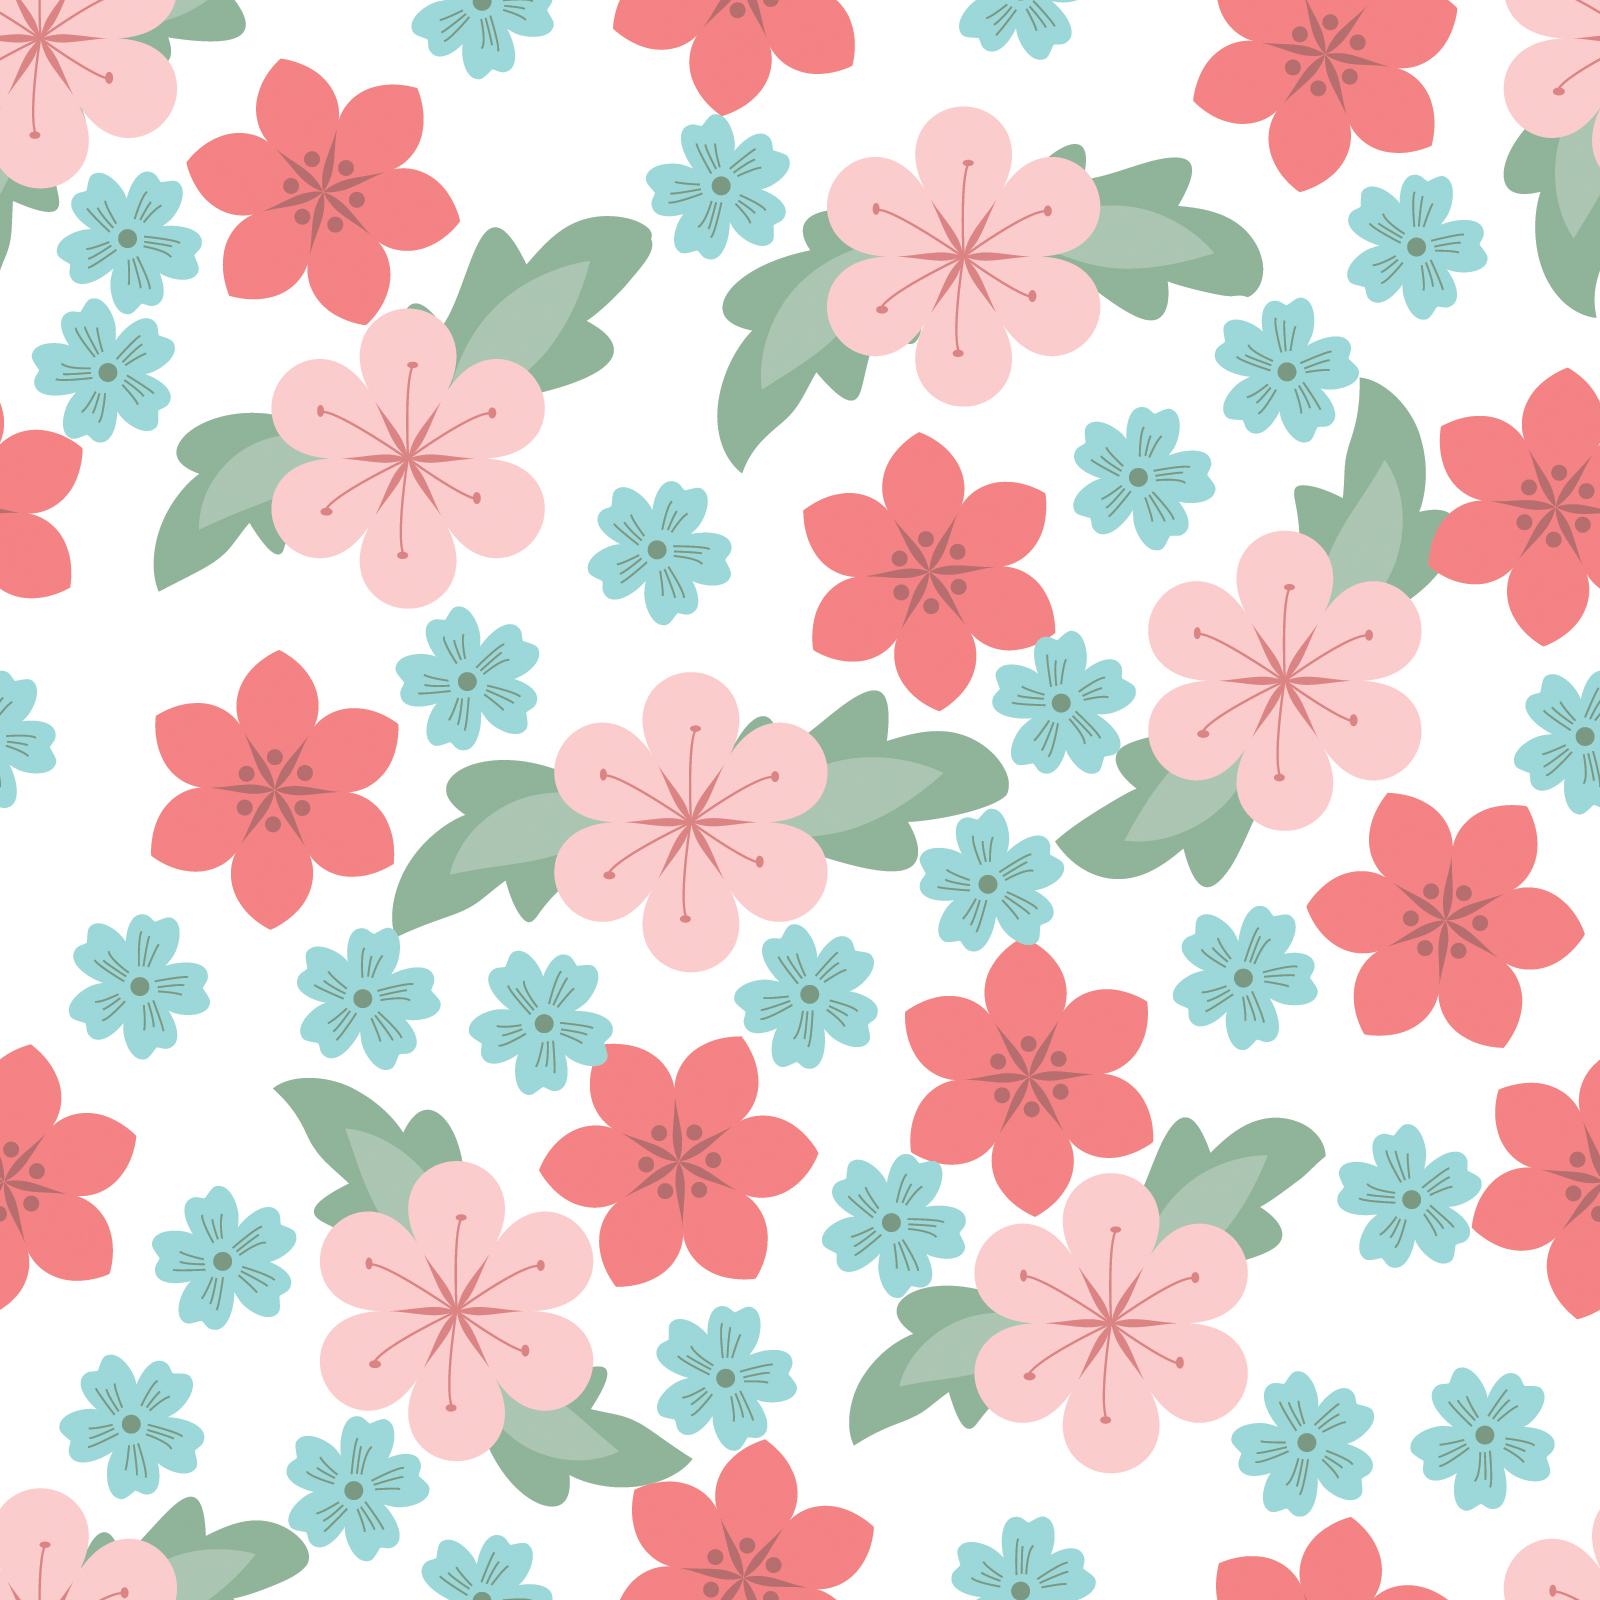 White Flower Pattern PPT Backgrounds